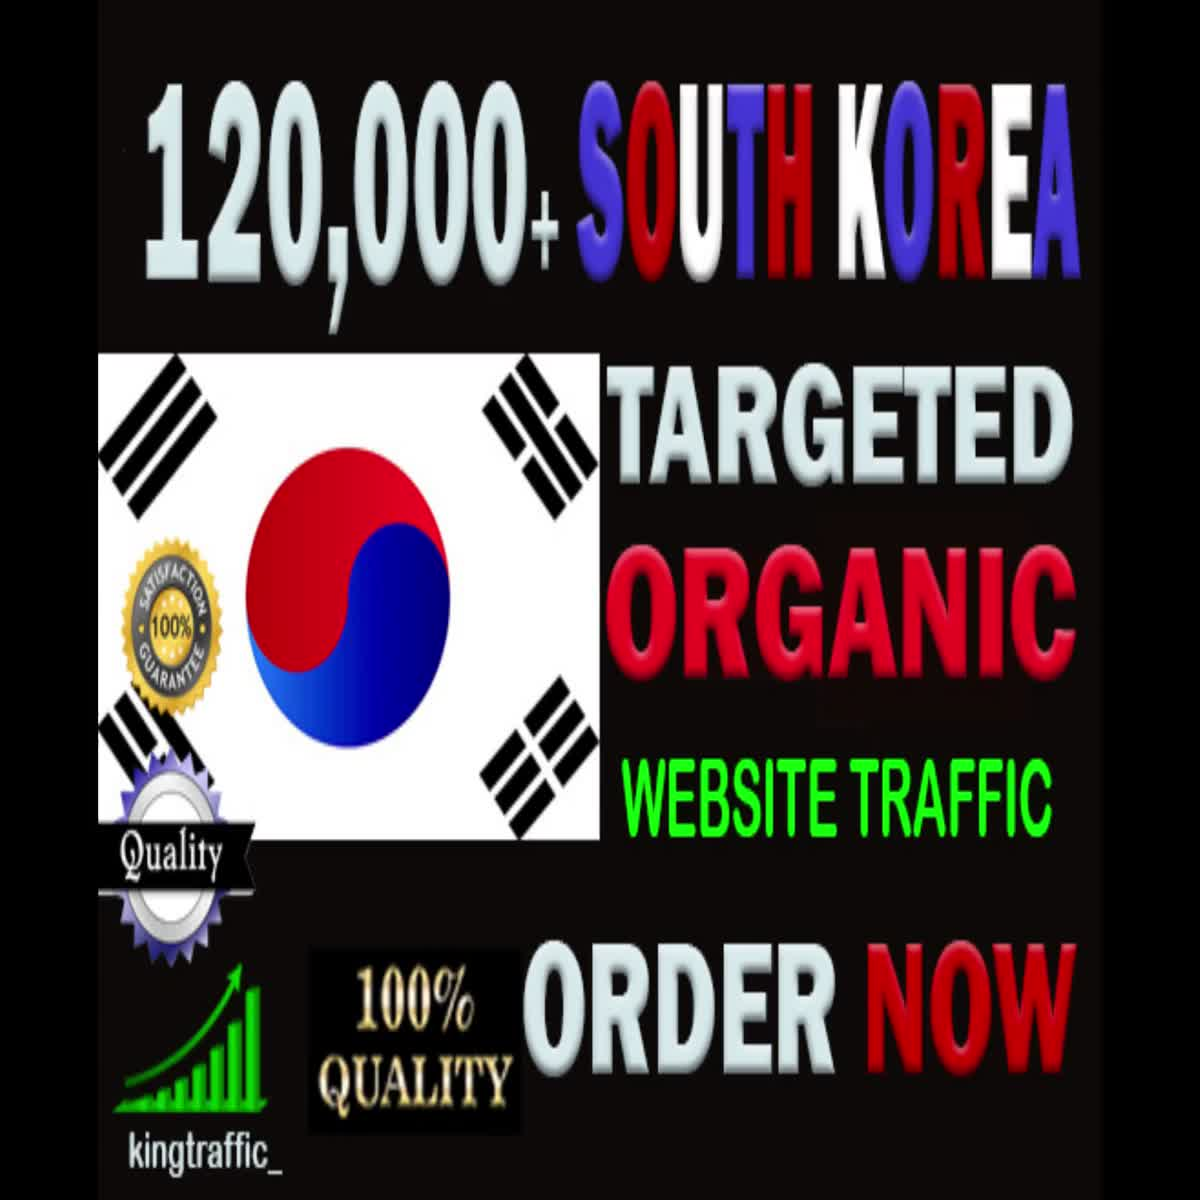 120,000 Quality South Korean web visitors real targeted Organic web traffic from South Korea